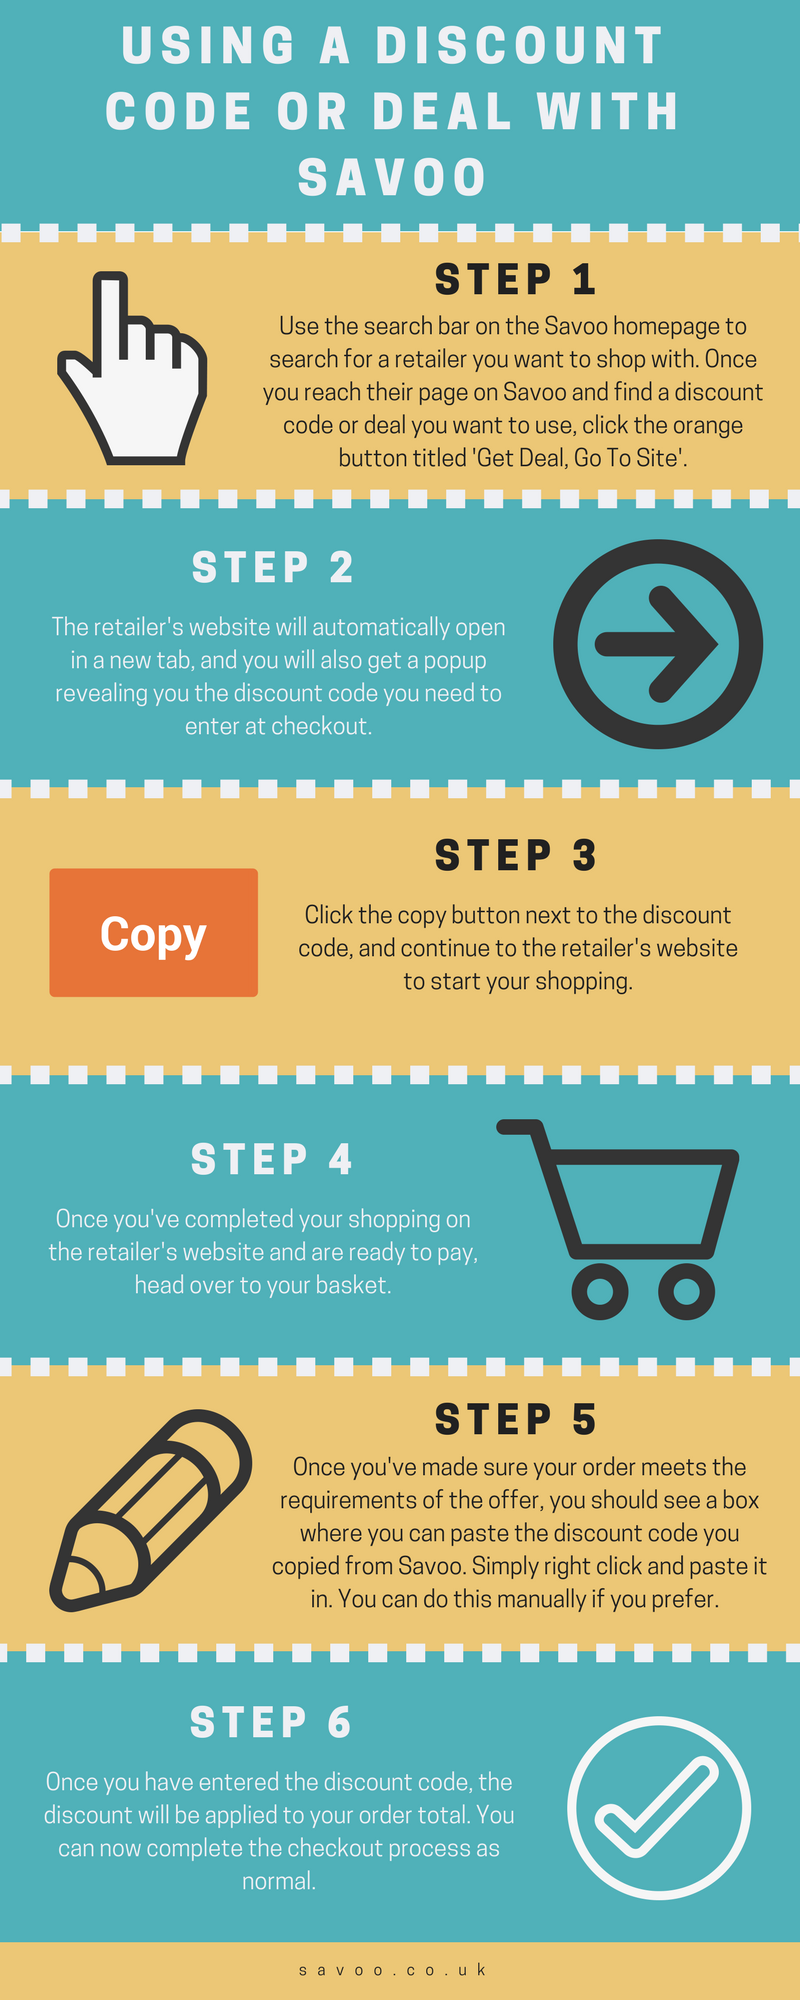 How to use a voucher or deal